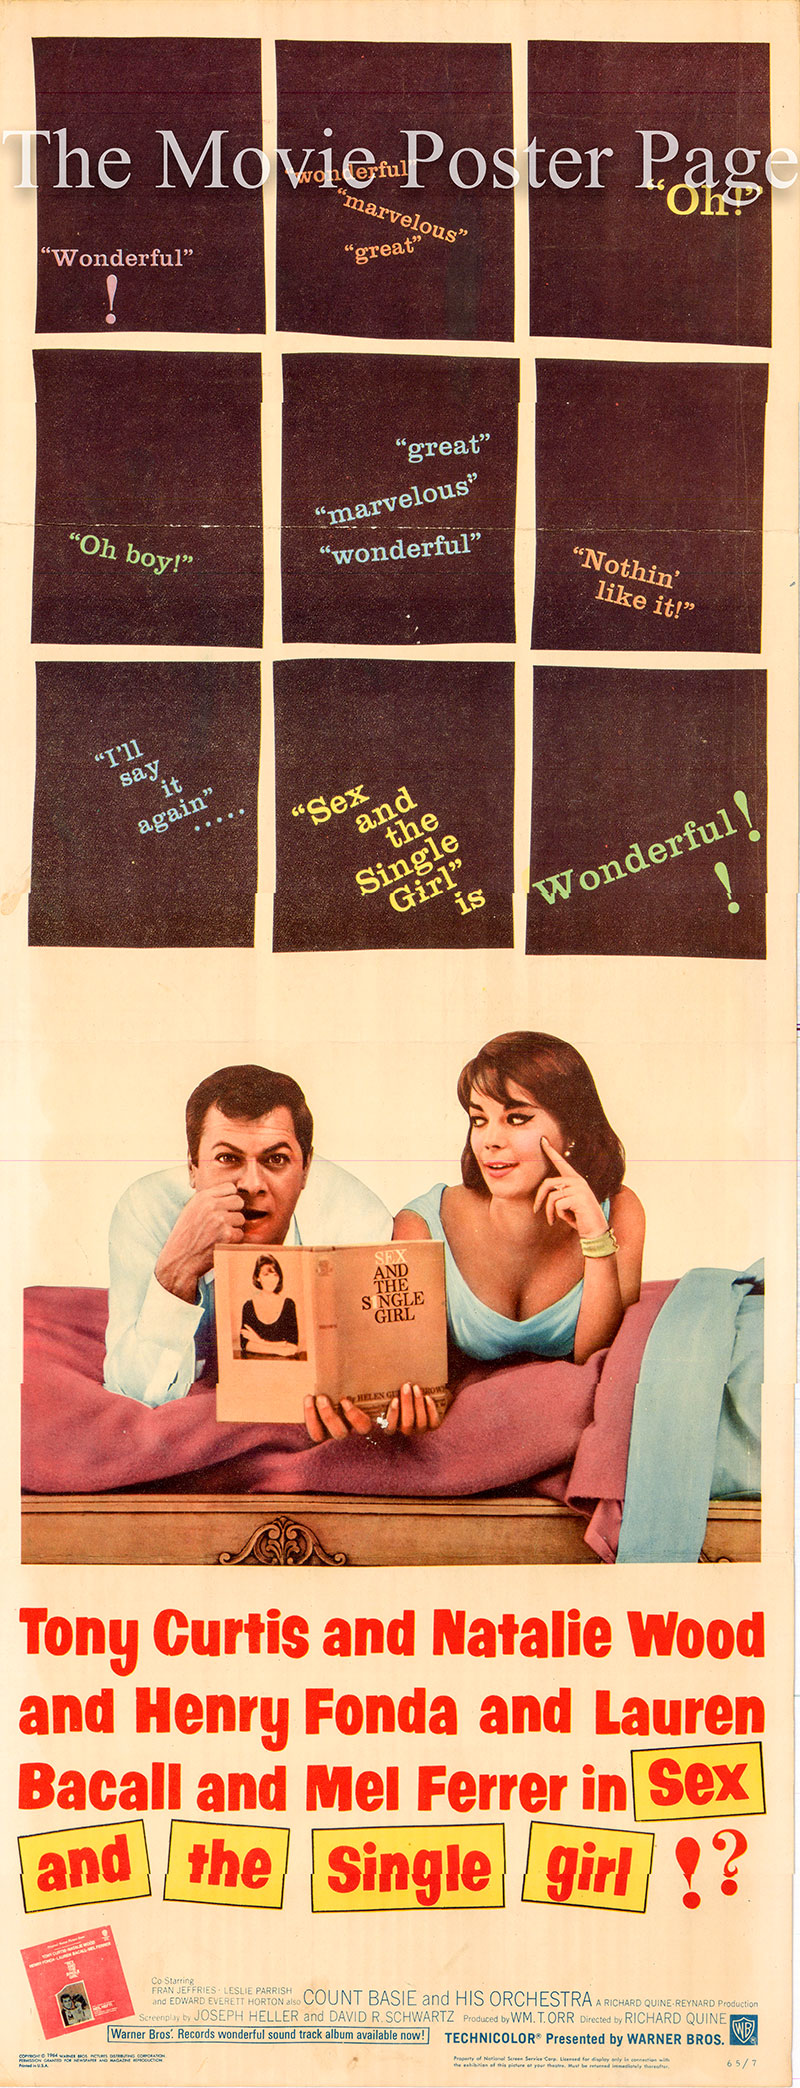 Pictured is a US insert poster for the 1964 Richard Quine film Sex and the Single Girl starring Natalie Wood as Helen Gurley Brown.